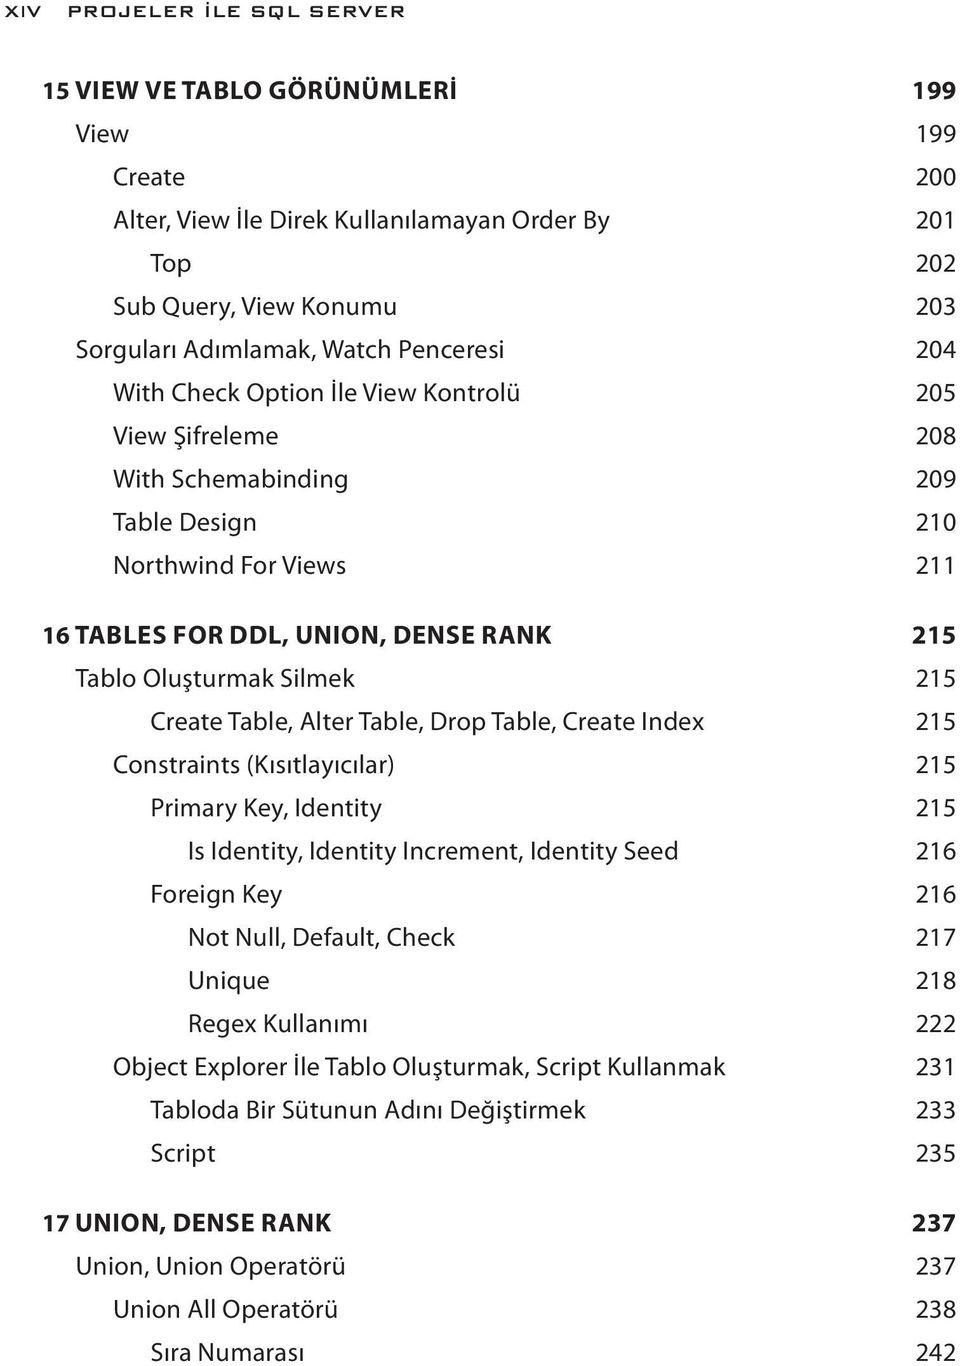 Silmek 215 Create Table, Alter Table, Drop Table, Create Index 215 Constraints (Kısıtlayıcılar) 215 Primary Key, Identity 215 Is Identity, Identity Increment, Identity Seed 216 Foreign Key 216 Not